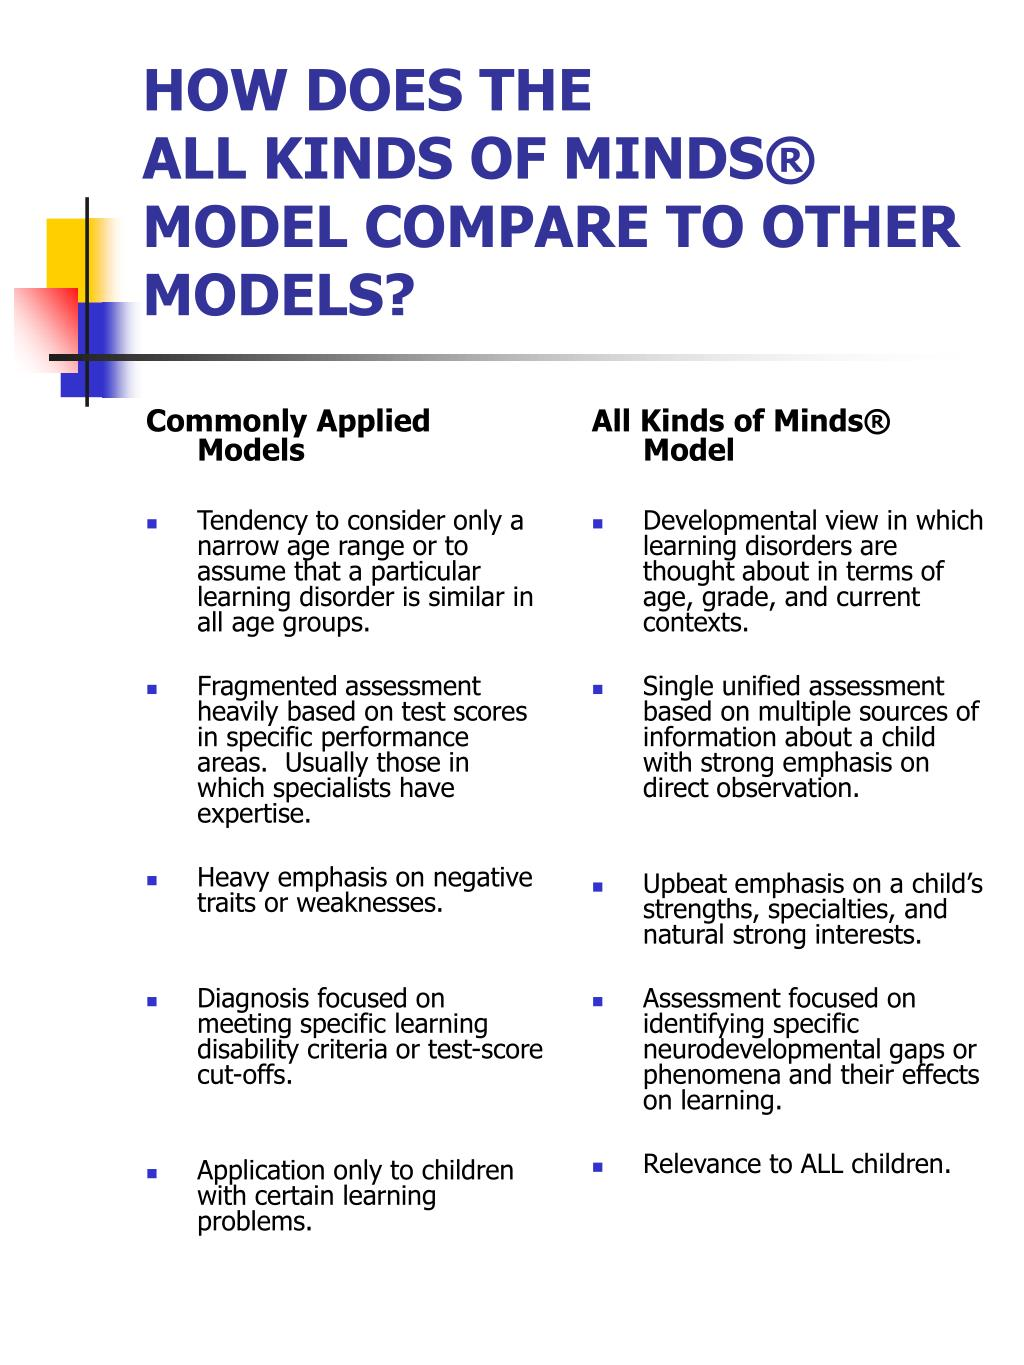 Commonly Applied Models